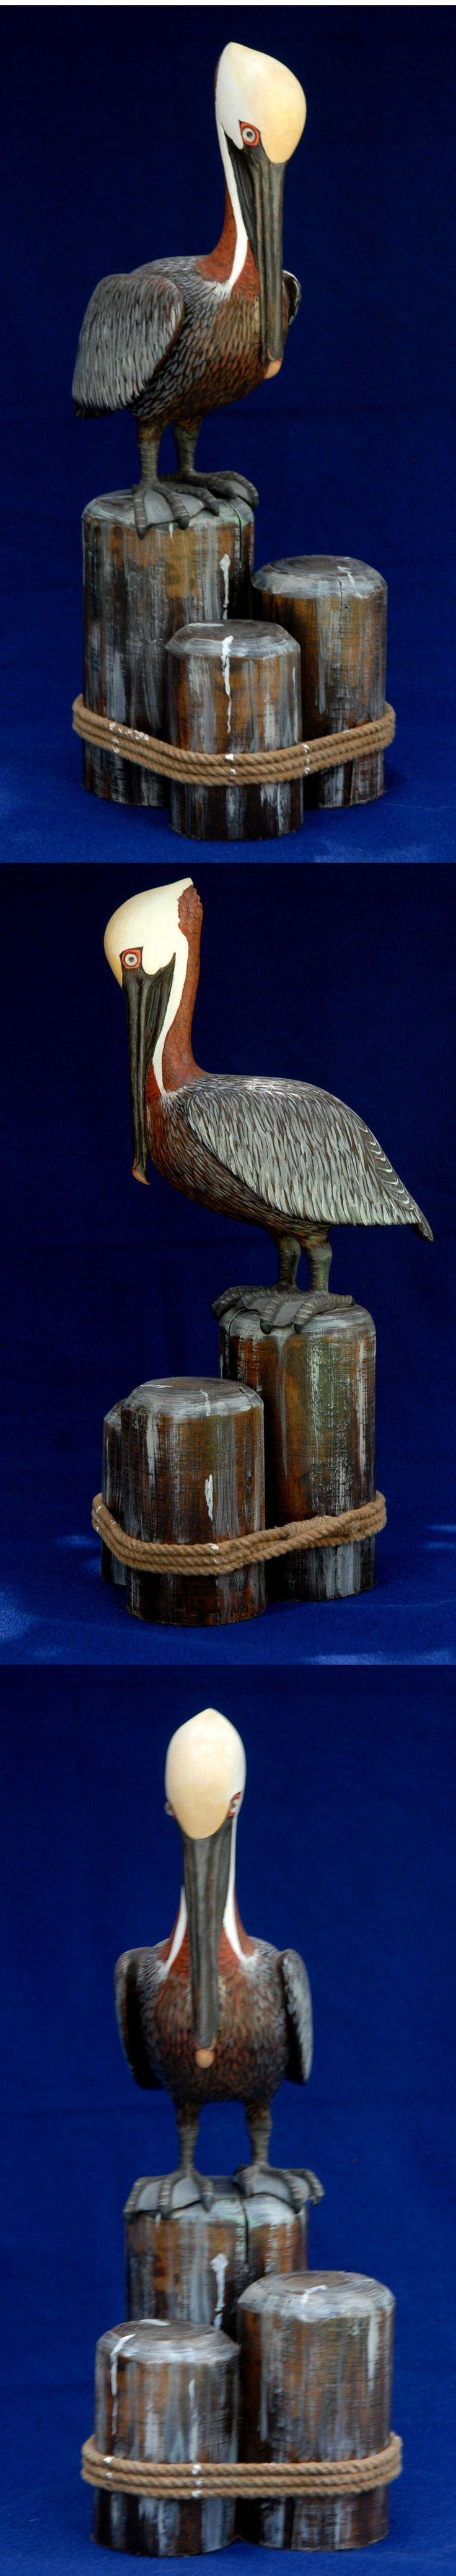 PELICAN STACKED wood carving - After 32 years with WV Dept Natural Resources, Mr Allen retired to Florida. He died in Aug. 2010.  There is a wonderful article from the Charleston Gazette detailing his life and describing him as a   renaissance man.